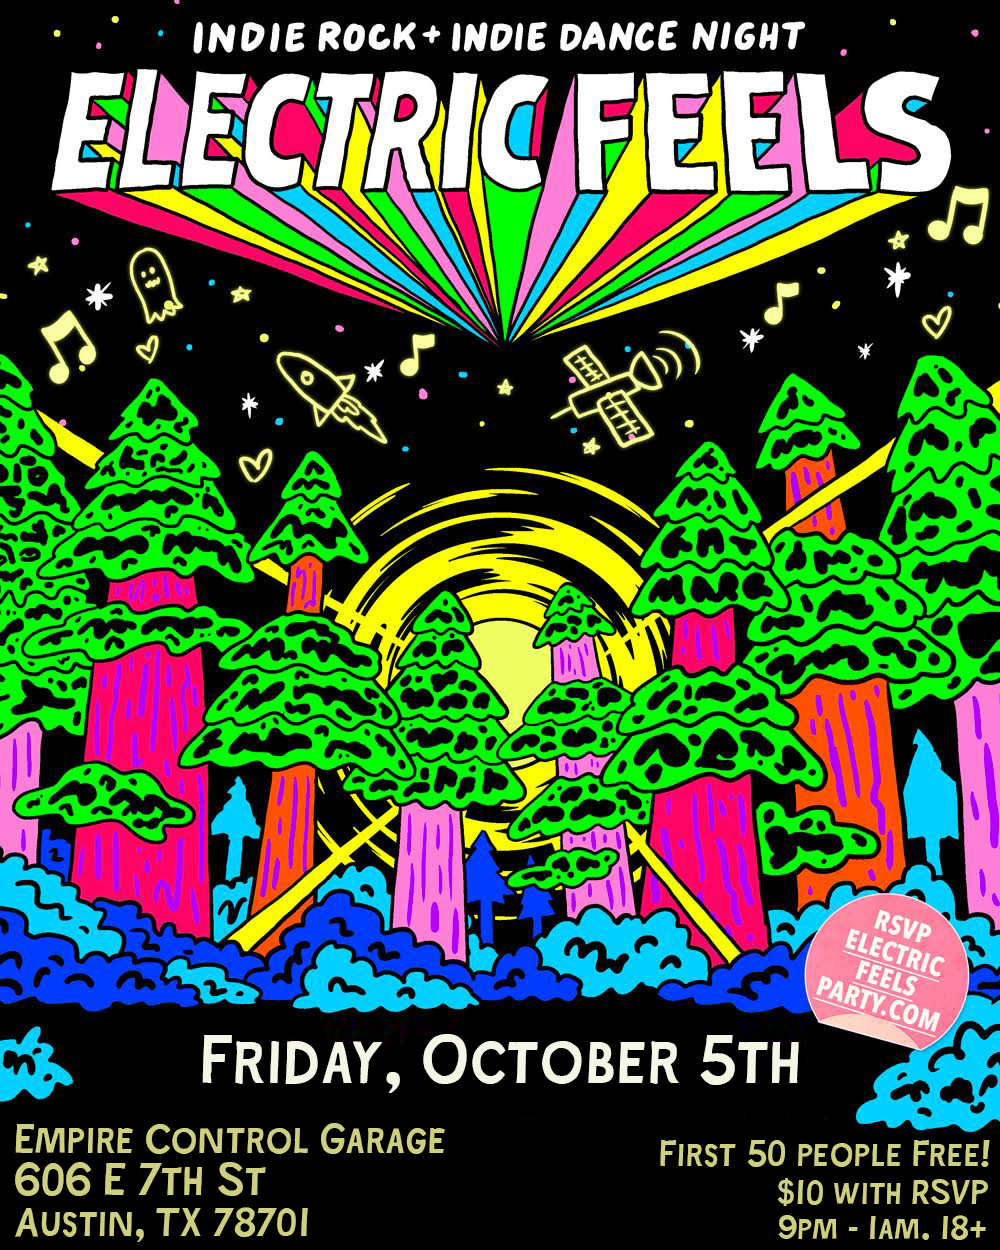 Electric Feels: Indie Rock + Indie Dance Party All Night